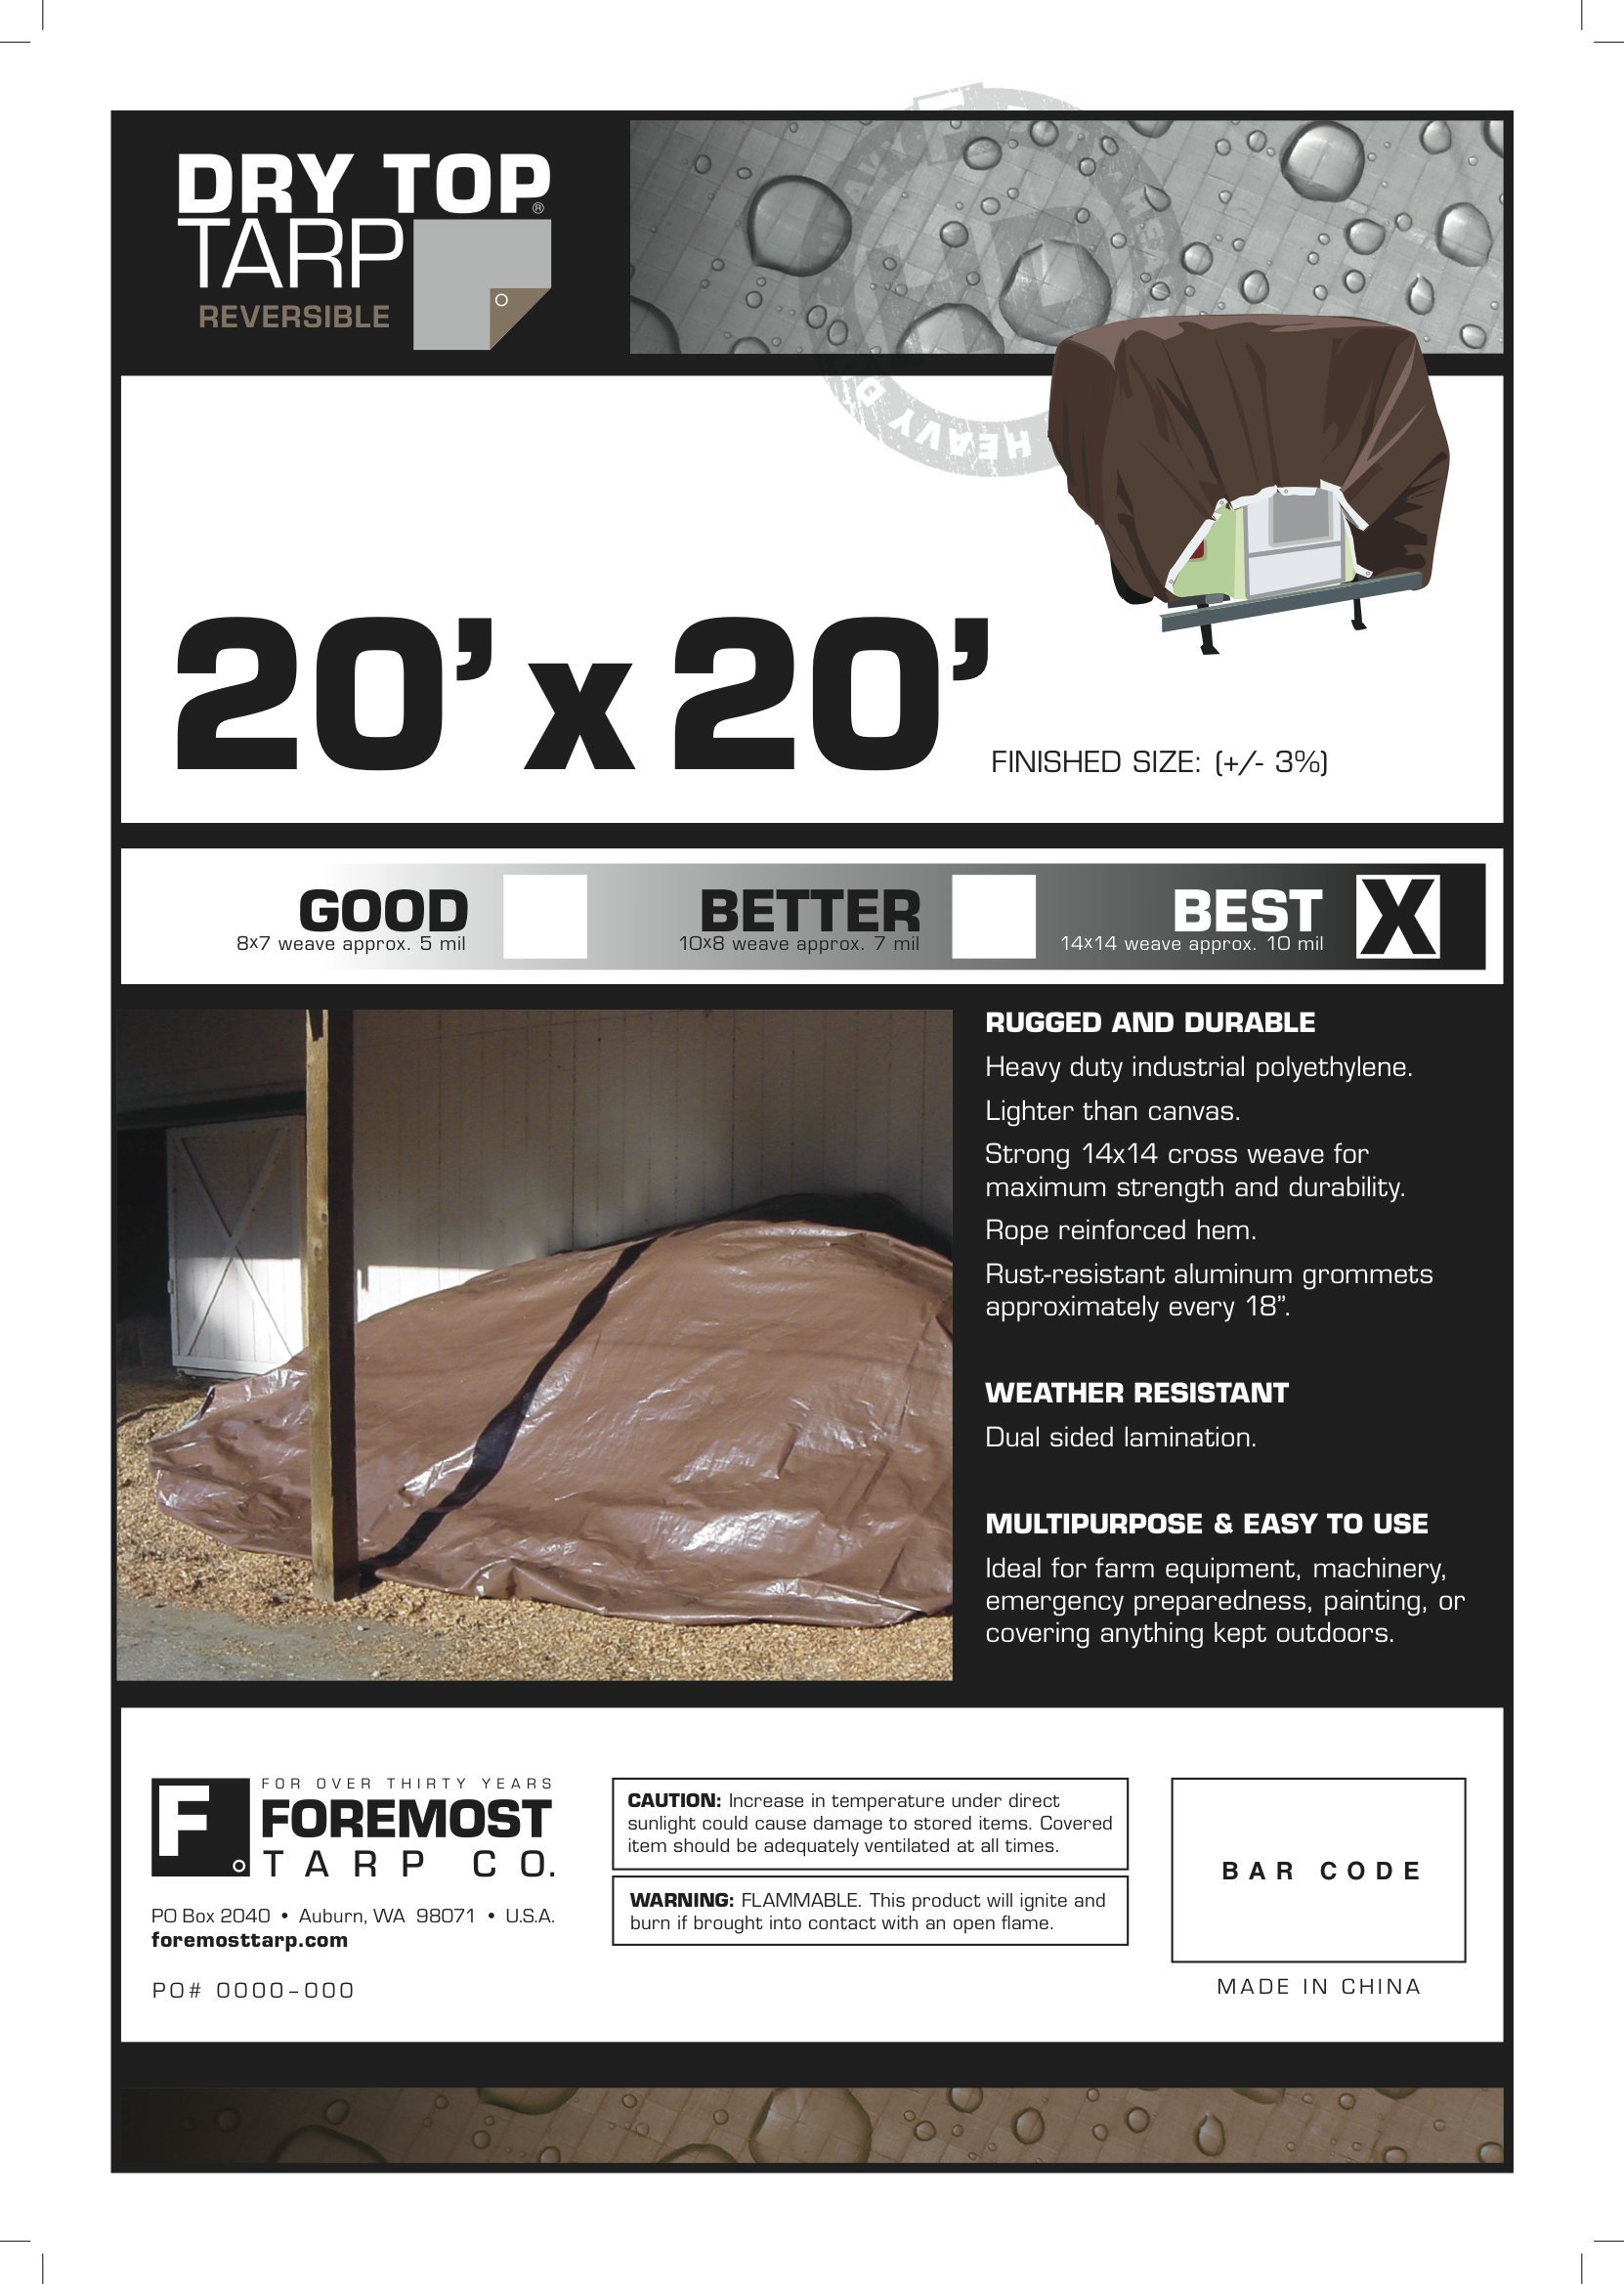 20' x 20' Dry Top Heavy Duty Silver/Brown Reversible Full Size 10-mil Poly Tarp item #220209